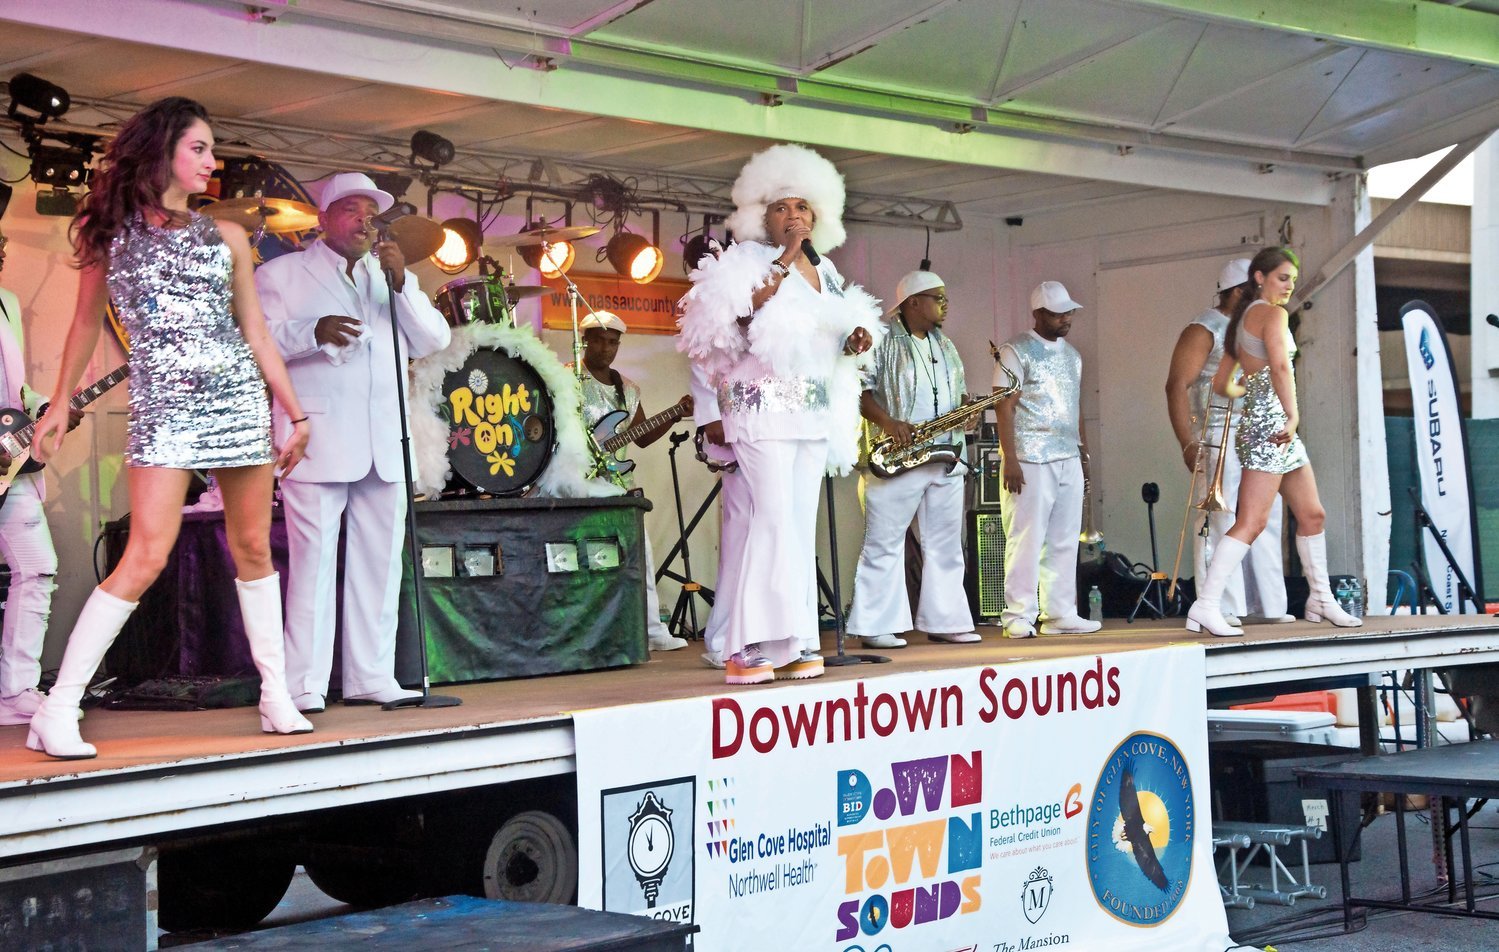 Members of Right On Band will take their fun, energetic music back to the Downtown Sounds stage on August 9.